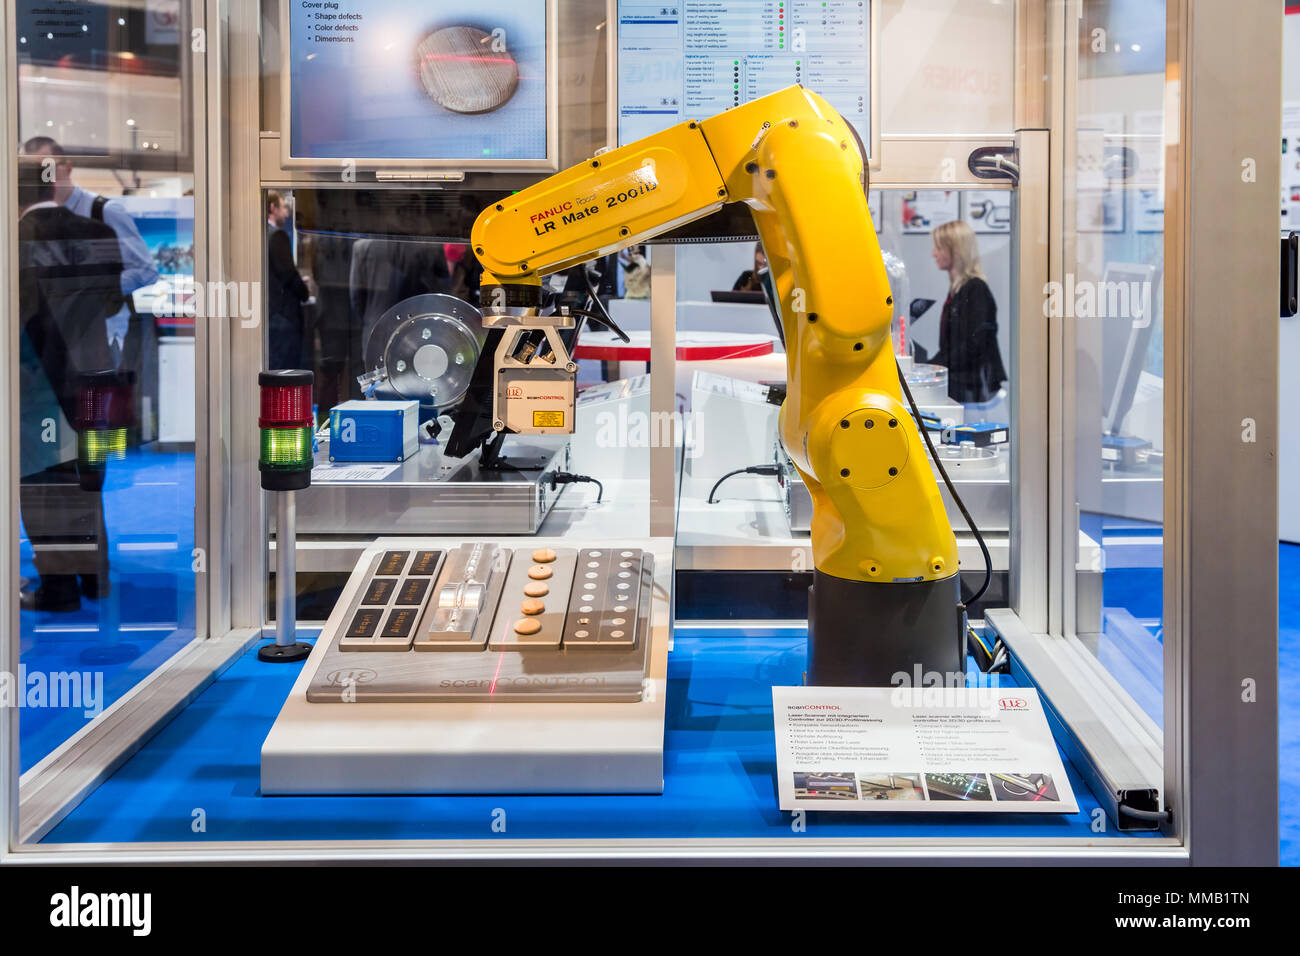 Hannover, Germany - April, 2018: Automatic Industrial Robot Fanuc LR Mate  200 iD and laser scanner with integrated controller for 2D/3D scans on Messe